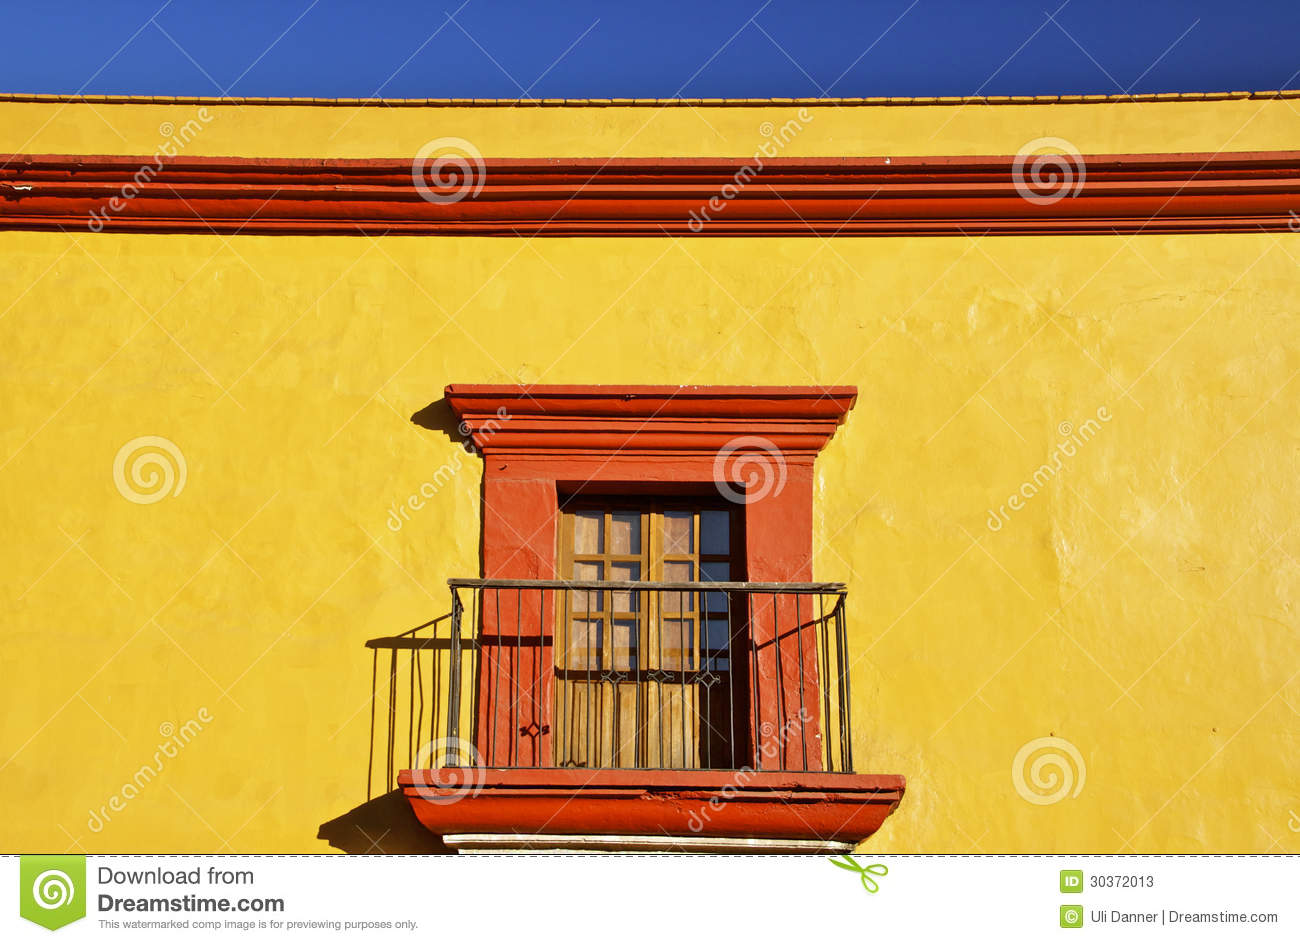 how to buy a house in mexico